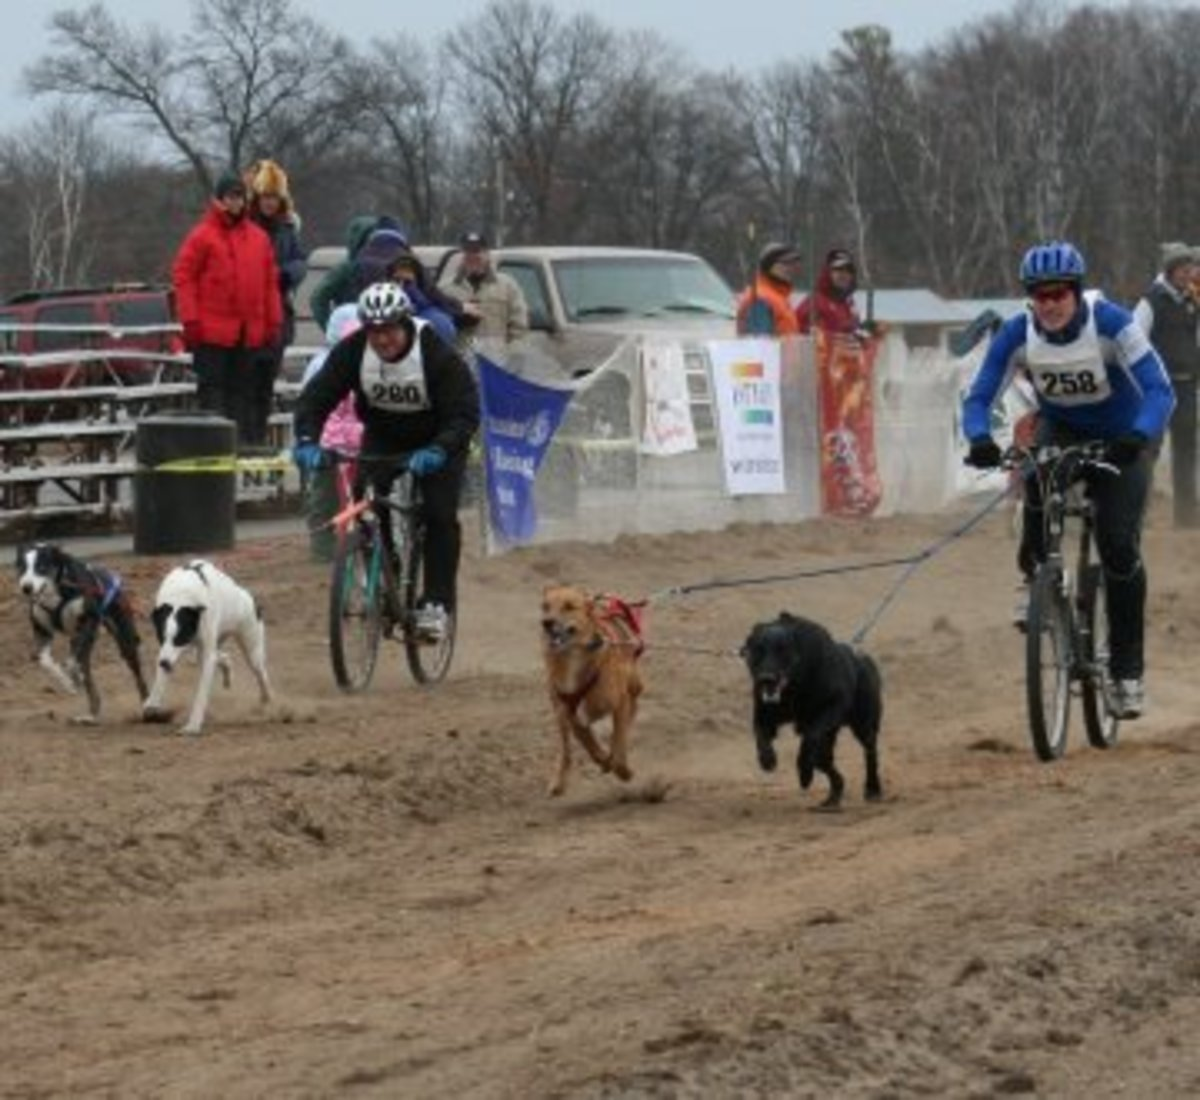 Dog Sports - What Is Bikejoring?